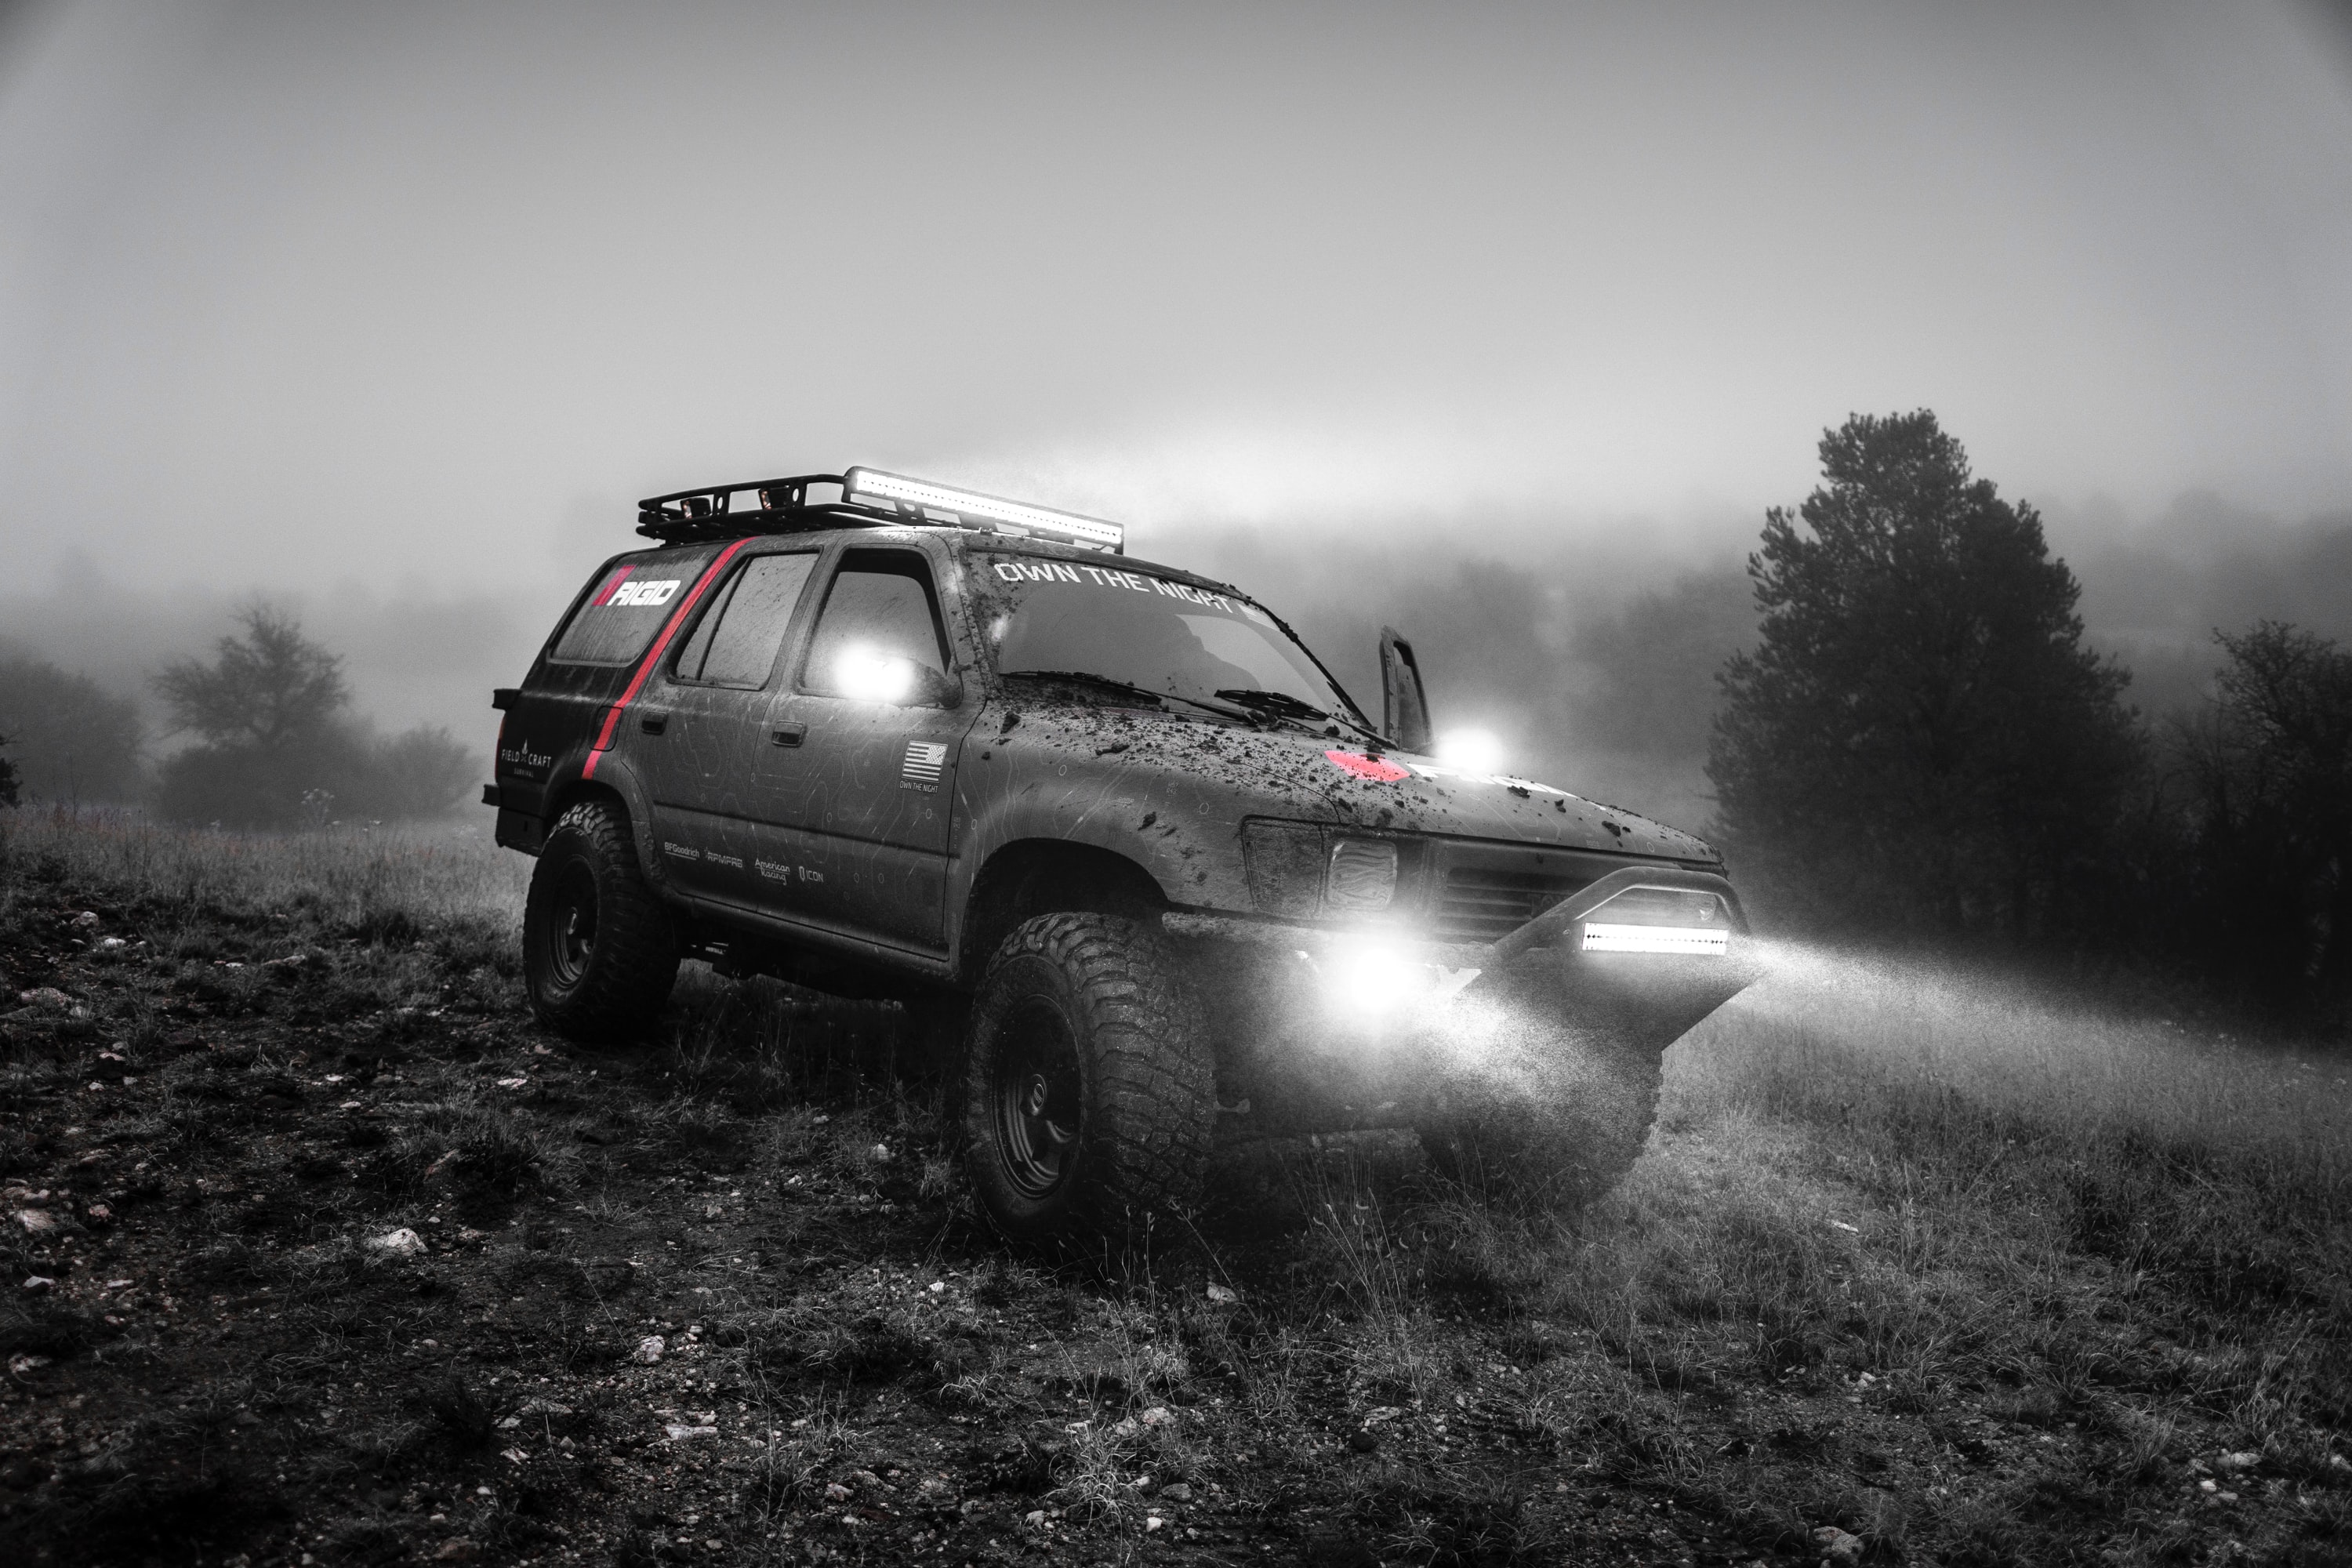 350 Offroad Pictures Download Free Images On Unsplash